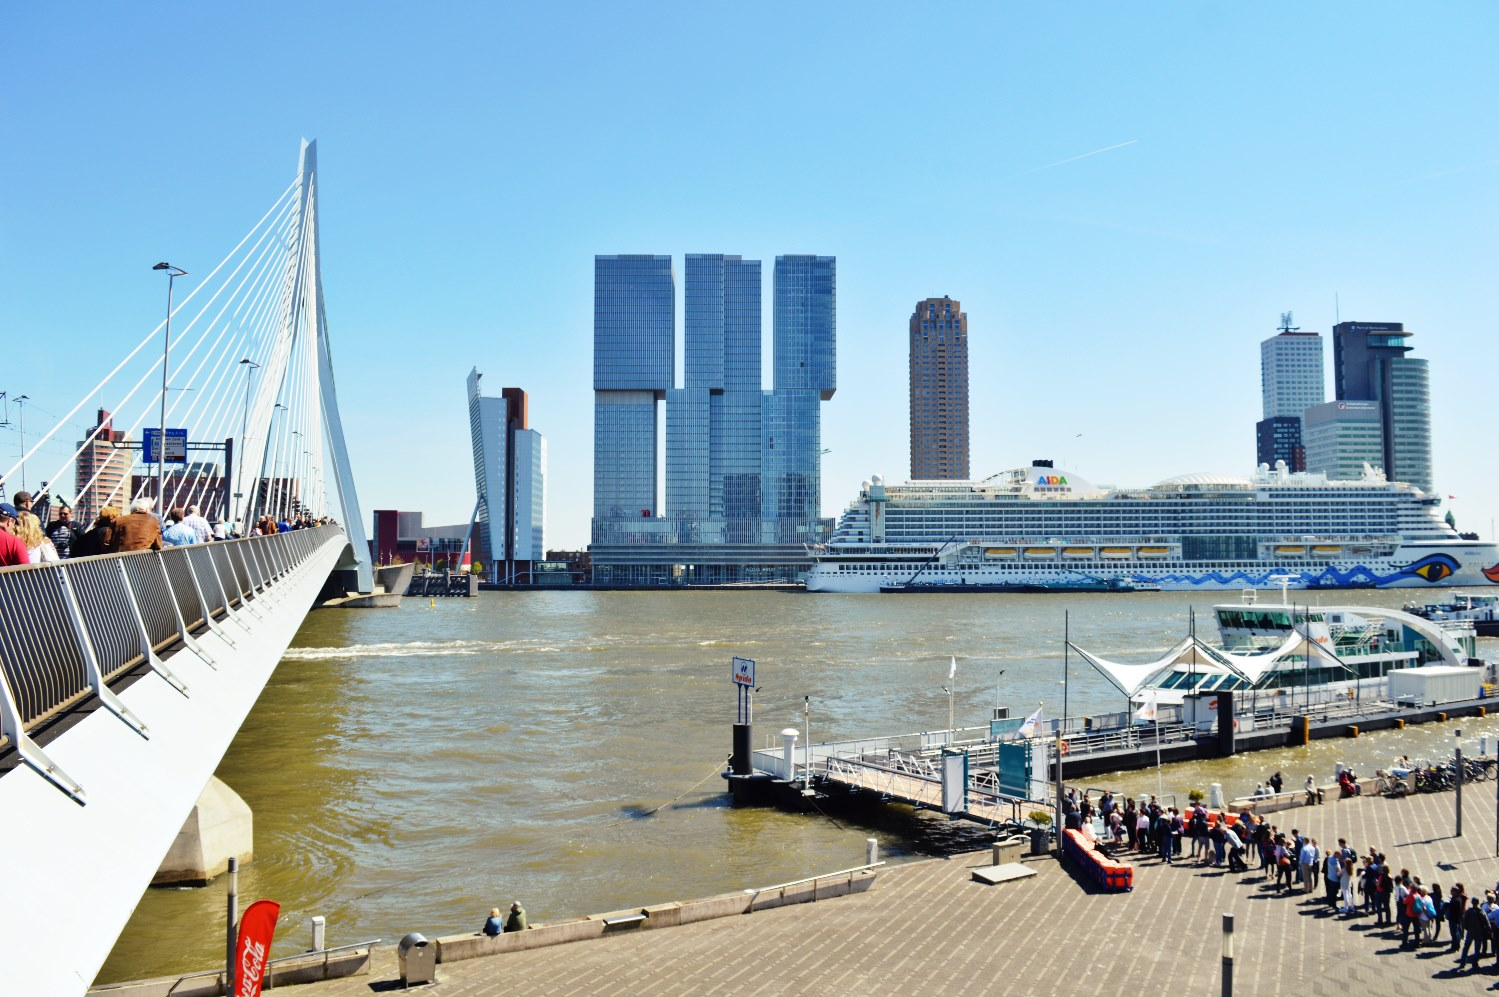 The Rotterdam Harbor